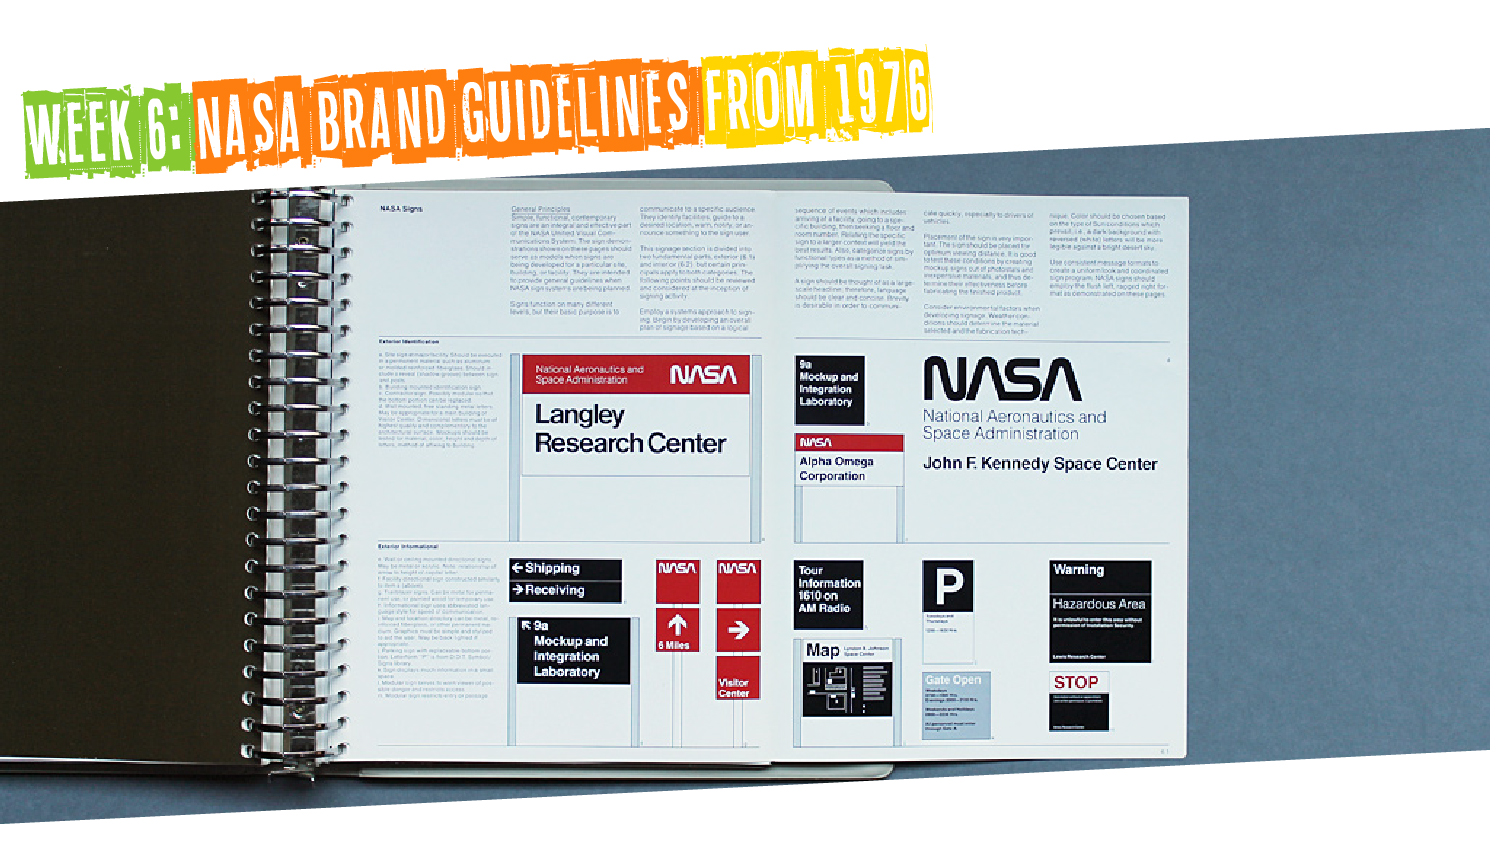 IYM Week 6: NASA Brand Guidelines from 1976